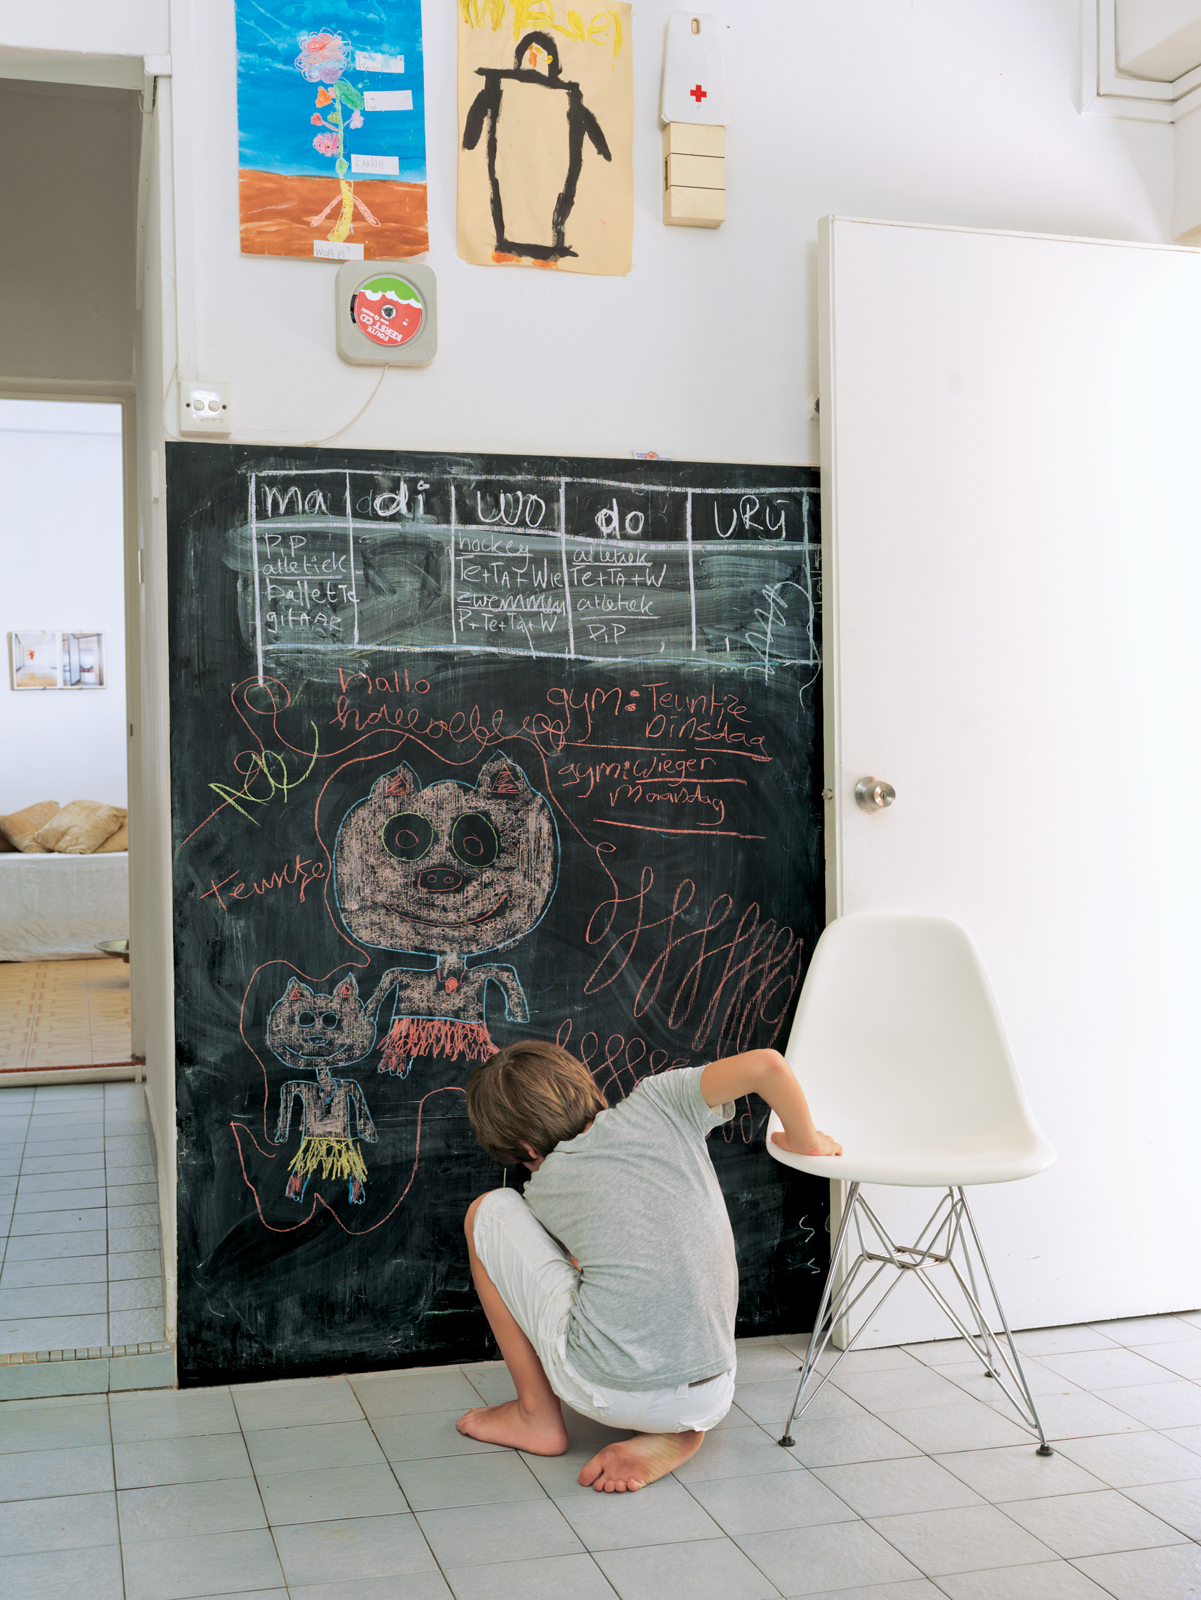 De Waart added a chalkboard to the kitchen for writing memos and for drawing, as Tammo does here.